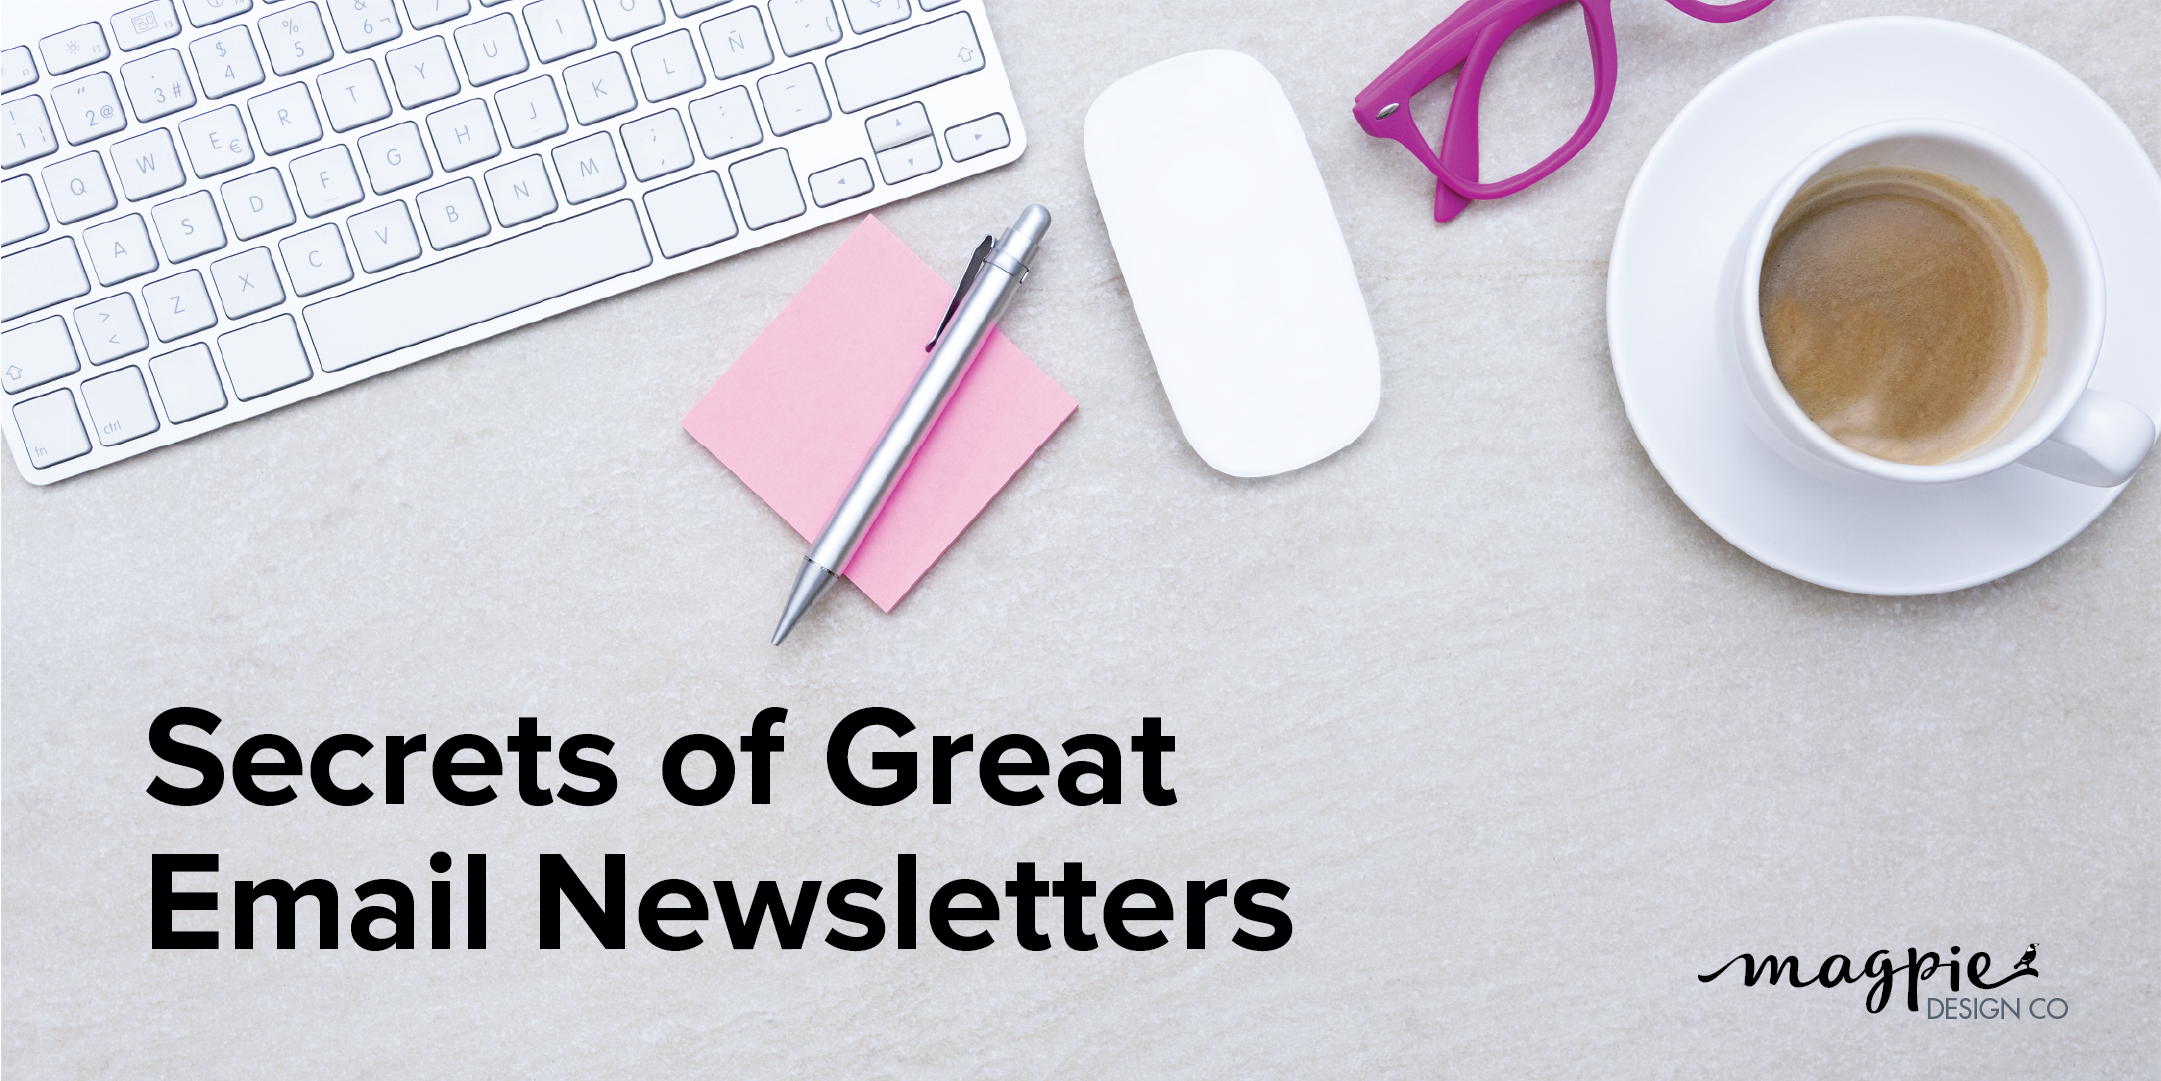 Secrets of Great Email Newsletters